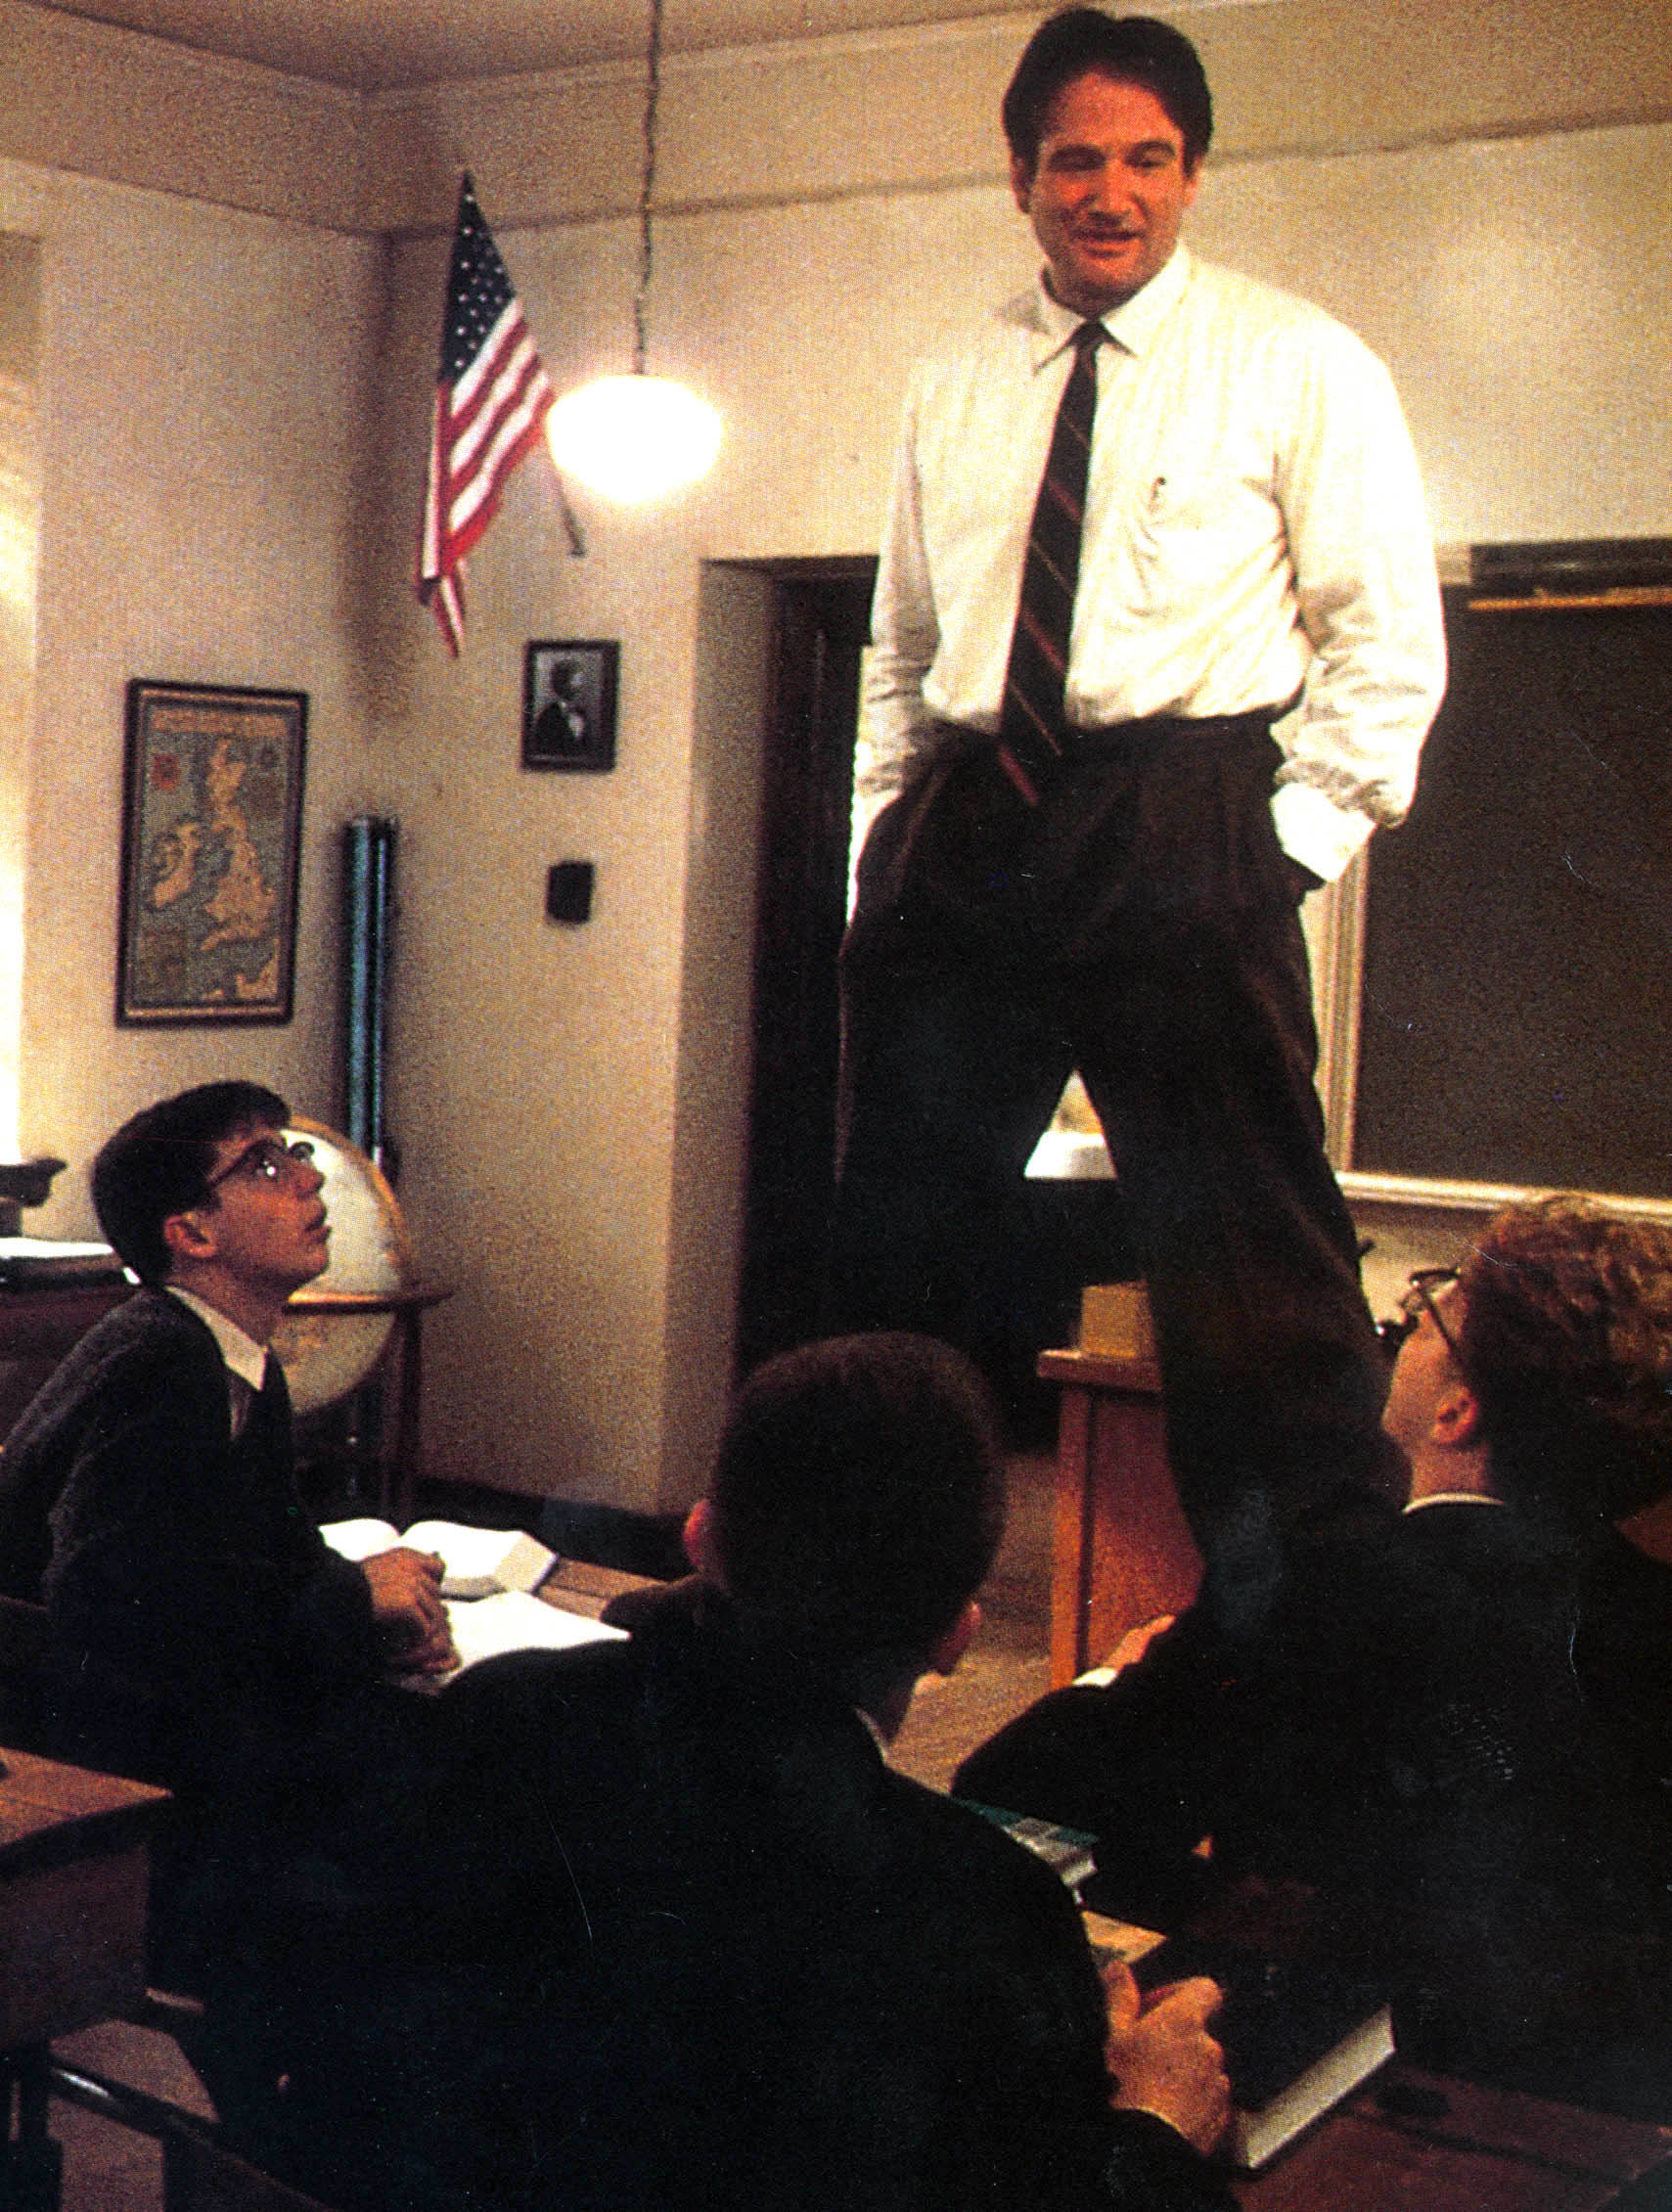 dead poets society essay dead poets society essay topics from robin williams quotes dead poets society quotesgram quotesgram from robin